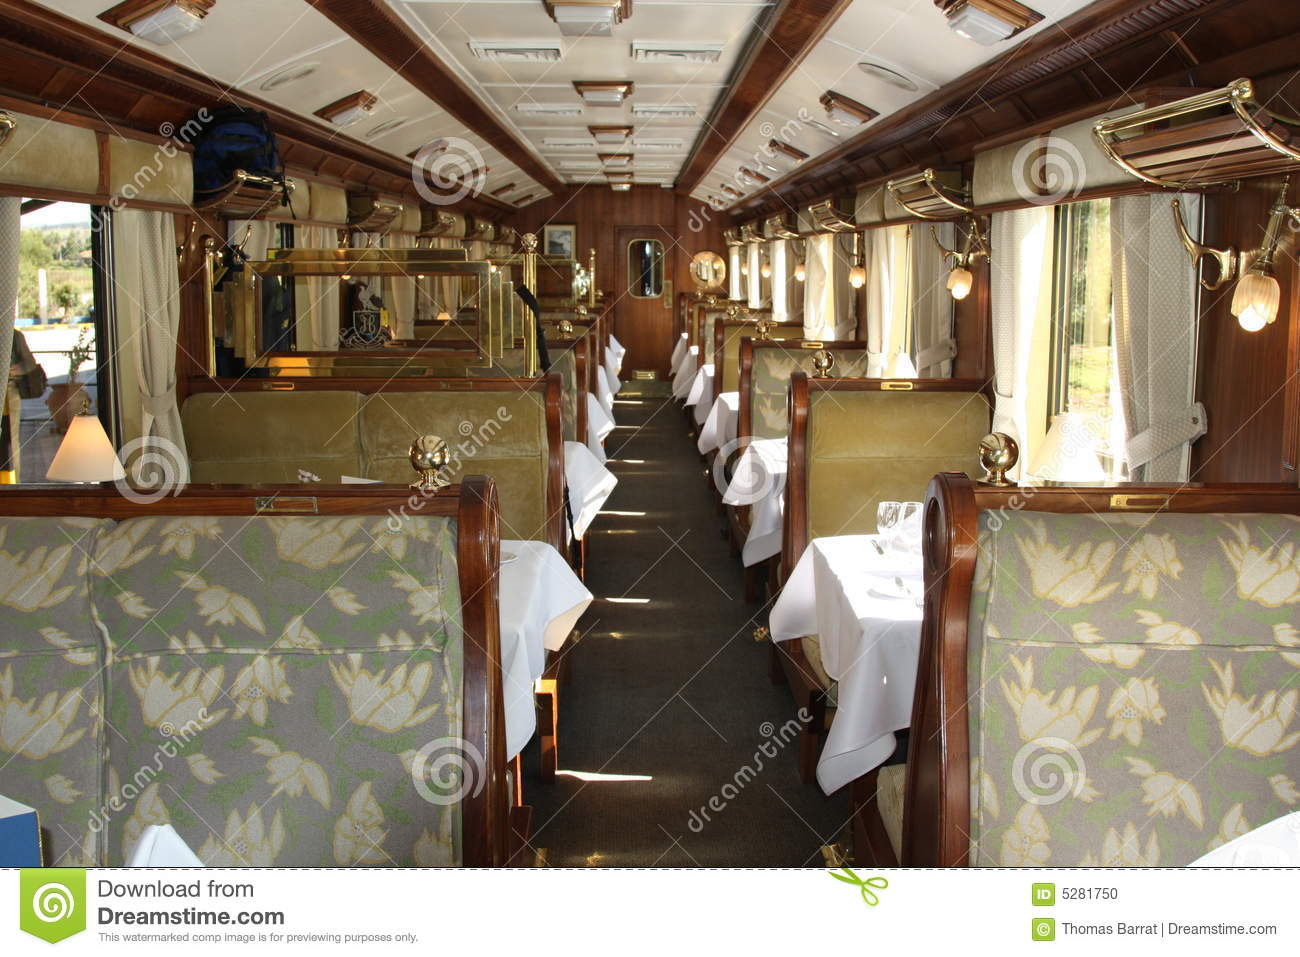 Interior of Luxury Train to Machu Picchu in Peru